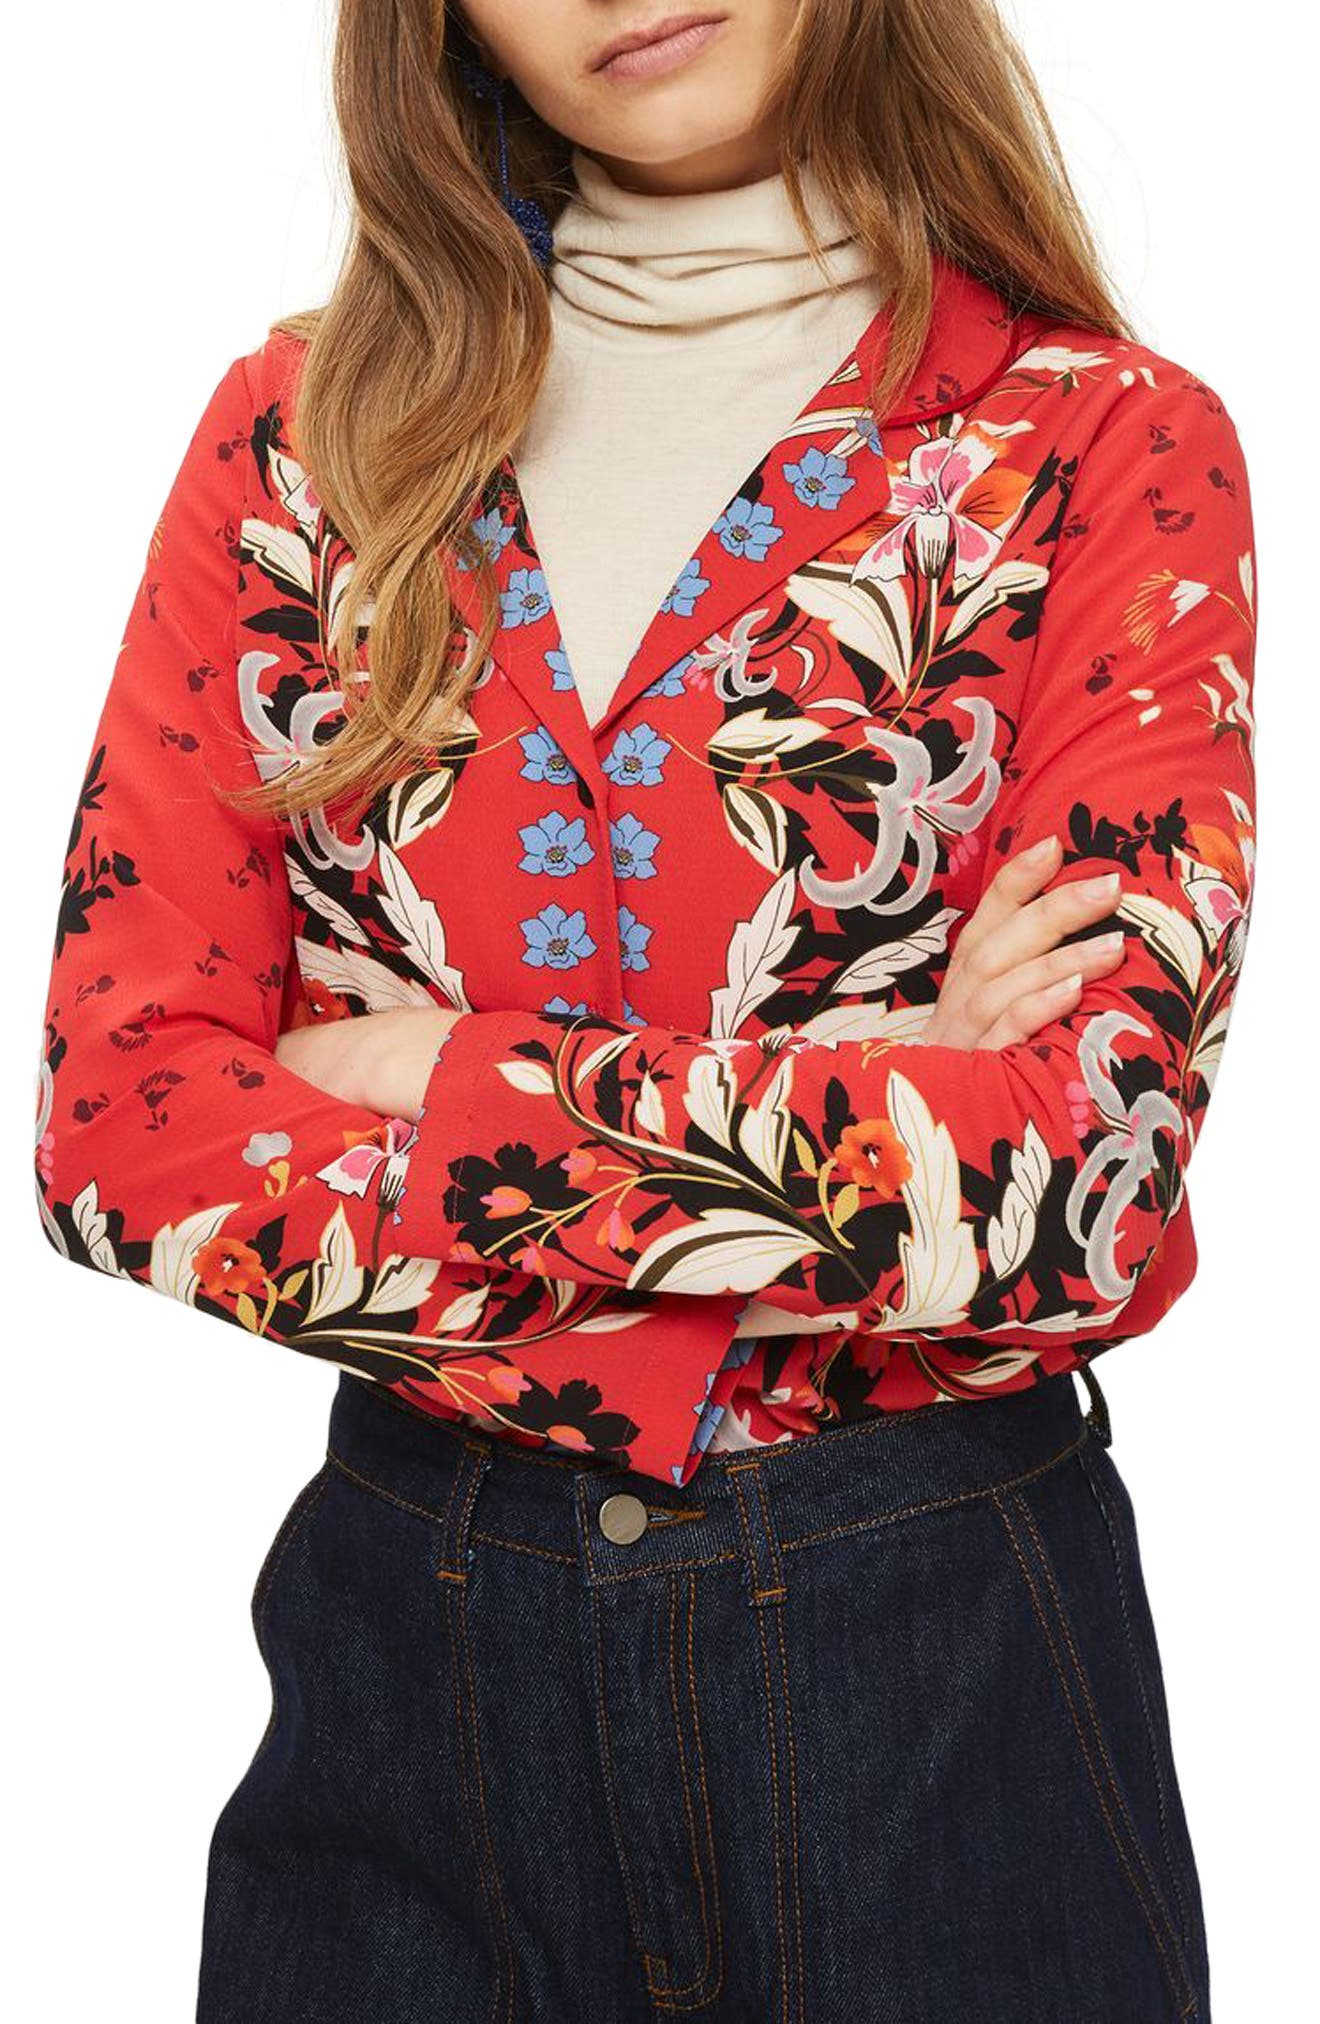 Tiger Lily Shirt,                             Main thumbnail 1, color,                             Red Multi